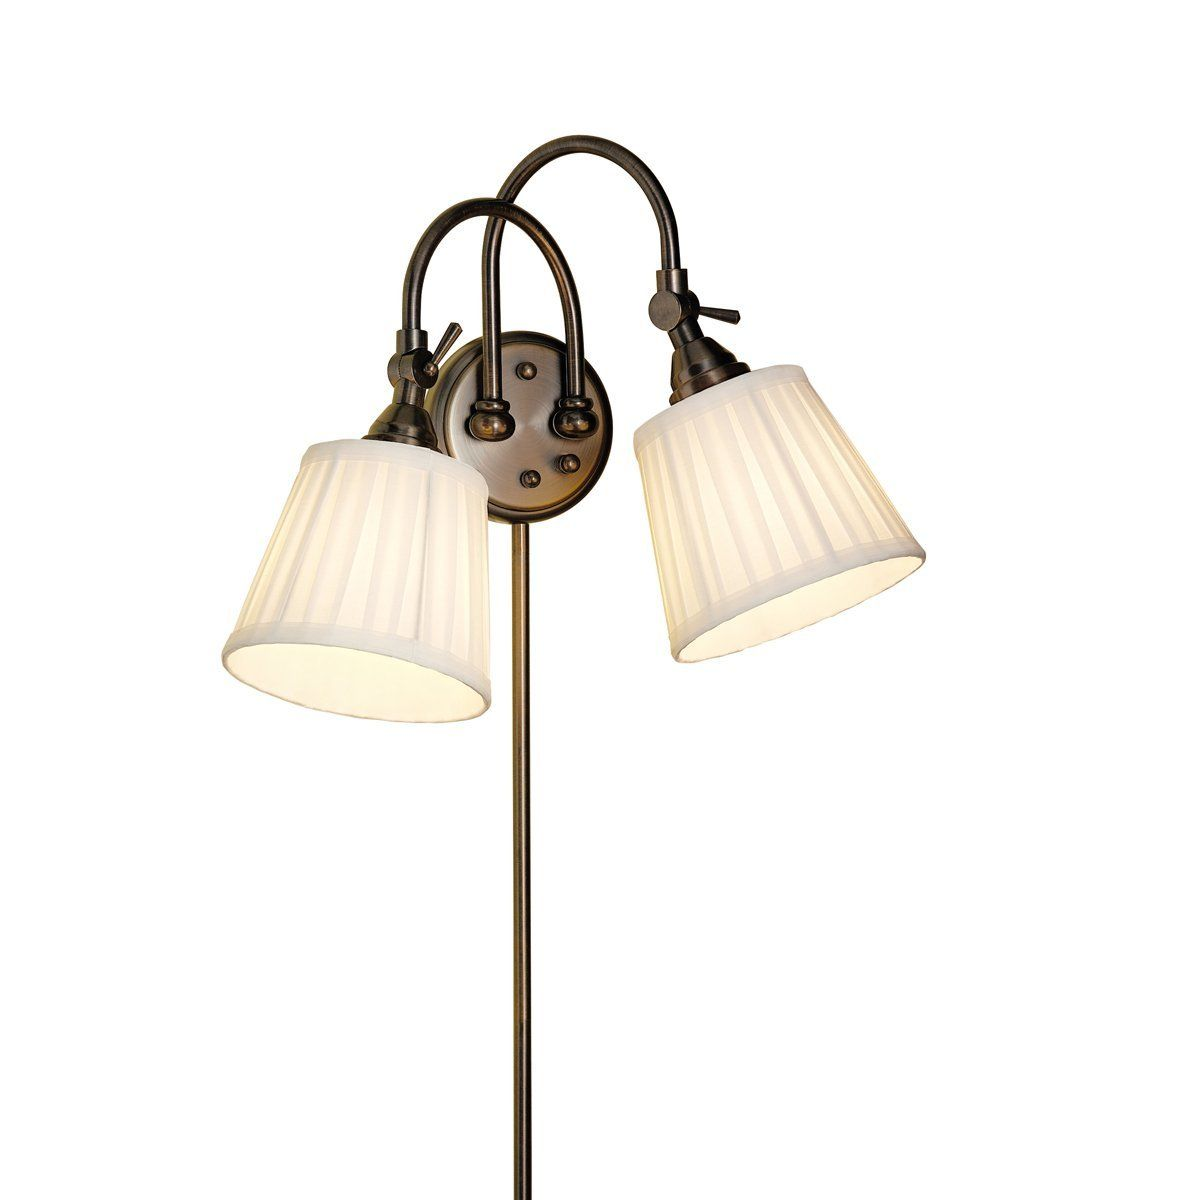 Kichler lighting 78012bbz blaine 36 inch portable adjustable 2 light kichler lighting 78012bbz blaine 36 inch portable adjustable 2 light wall sconce burnished aloadofball